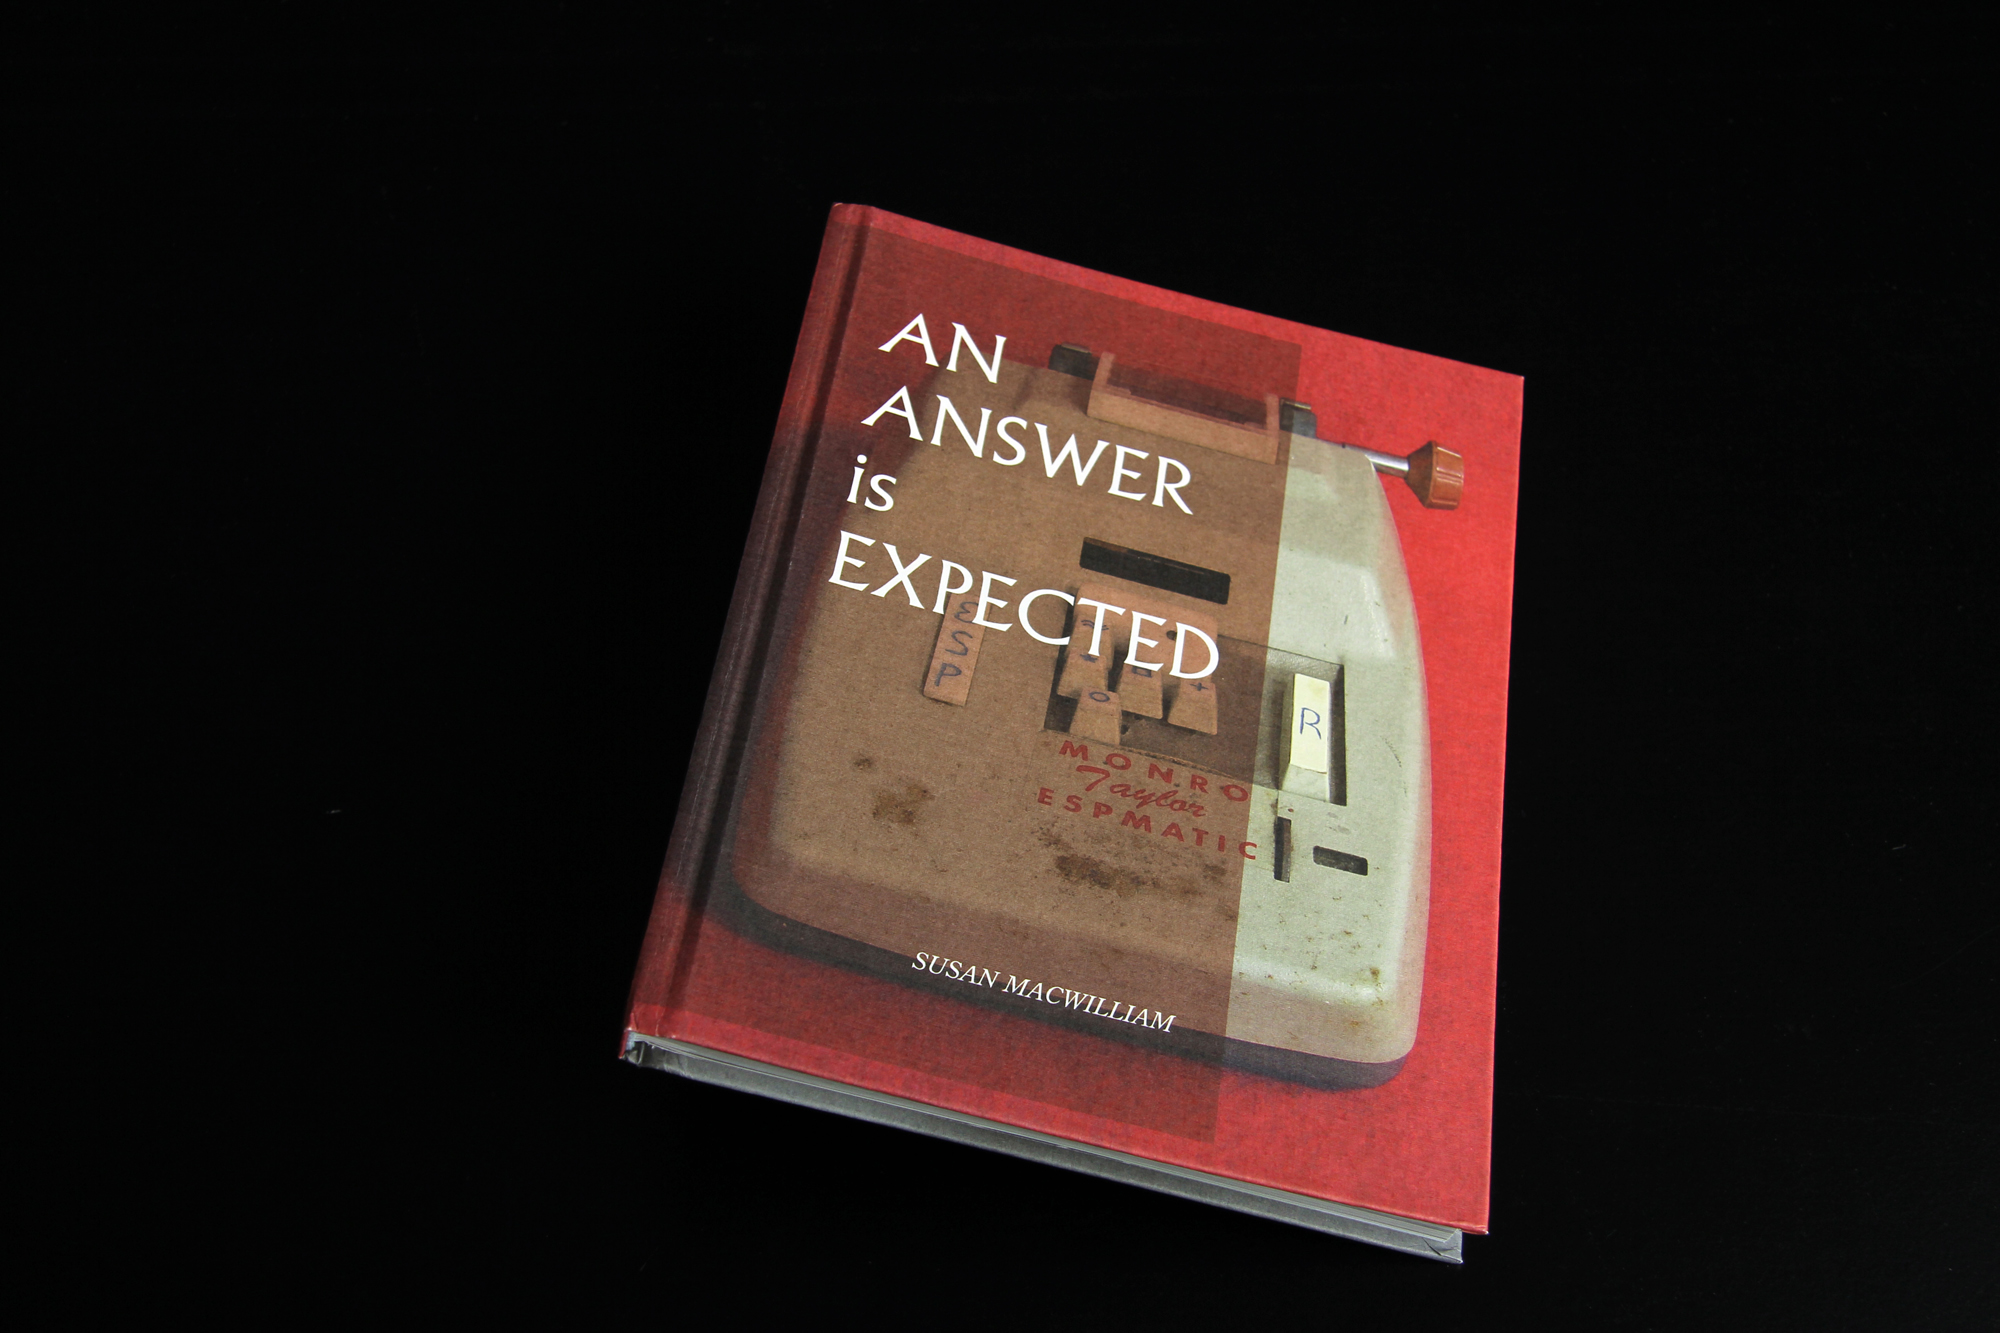 Cover image: An answer is expected: Susan MacWilliam